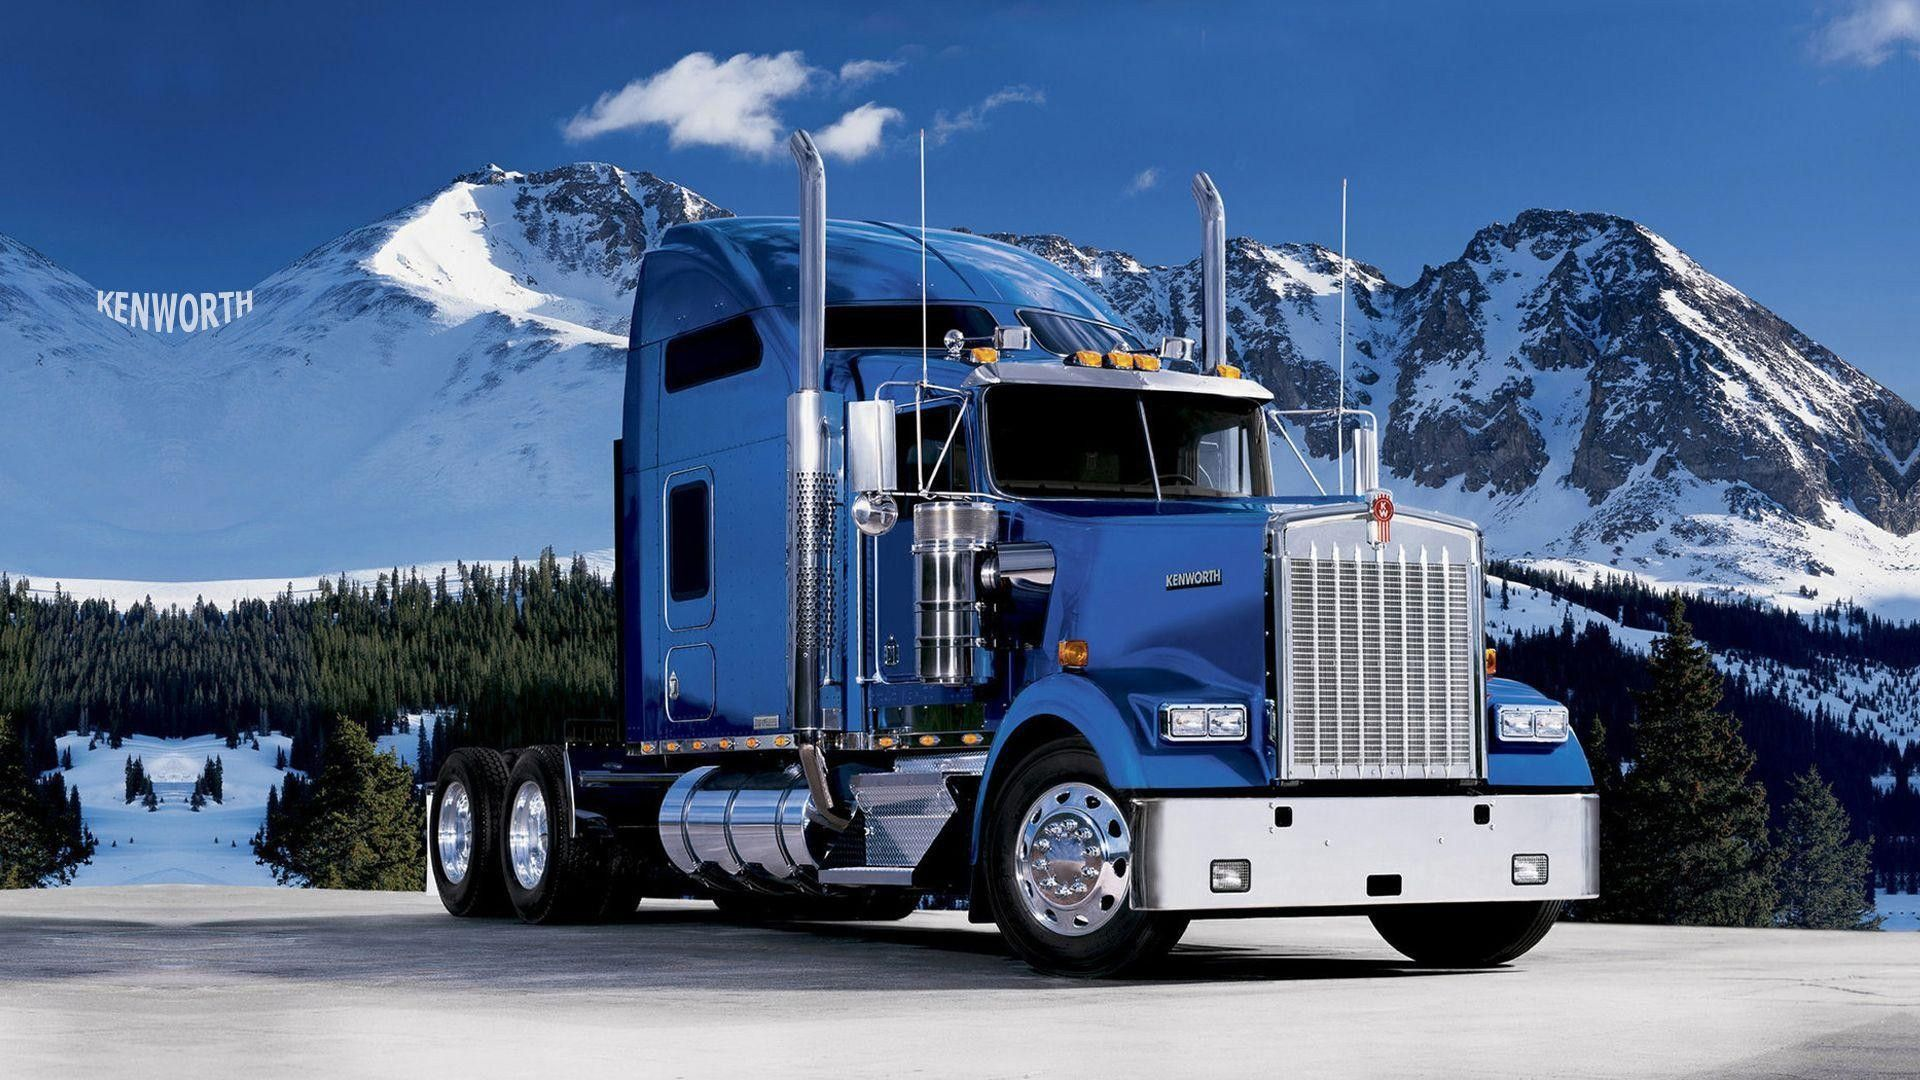 Trucks Kenworth Peterbilt Wallpaper 2754353 Wallbase Cc